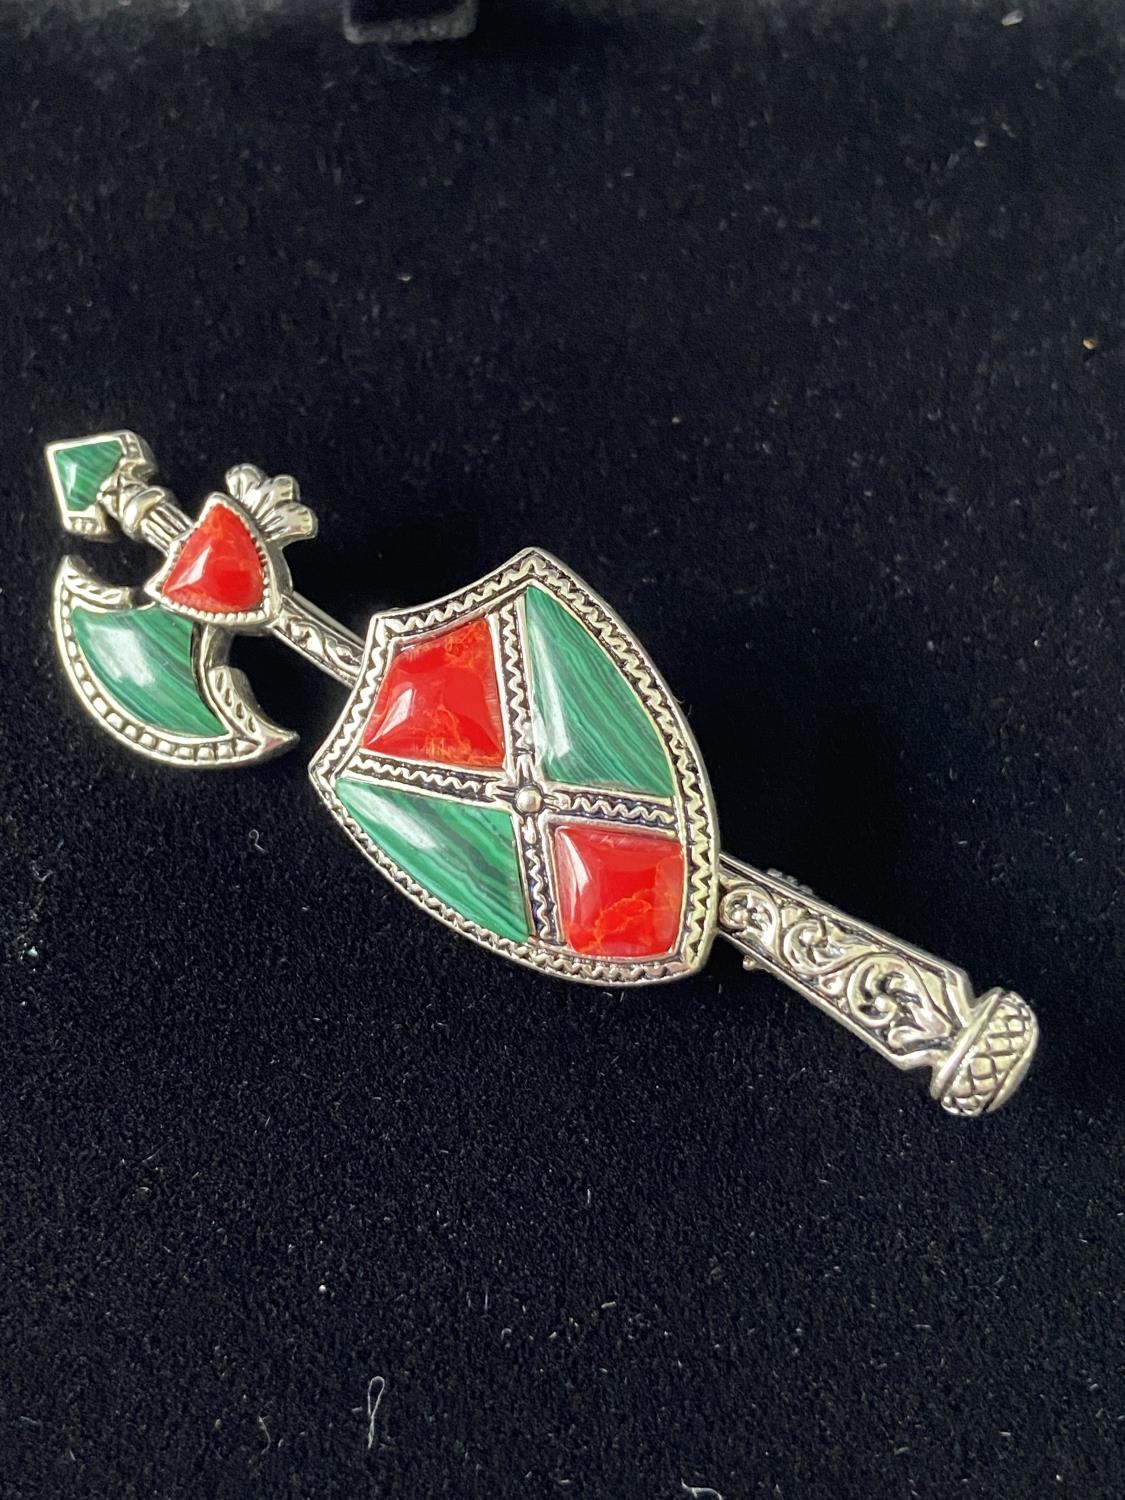 A Silver and malachite arrow shaped brooch. [5.3cm in length]